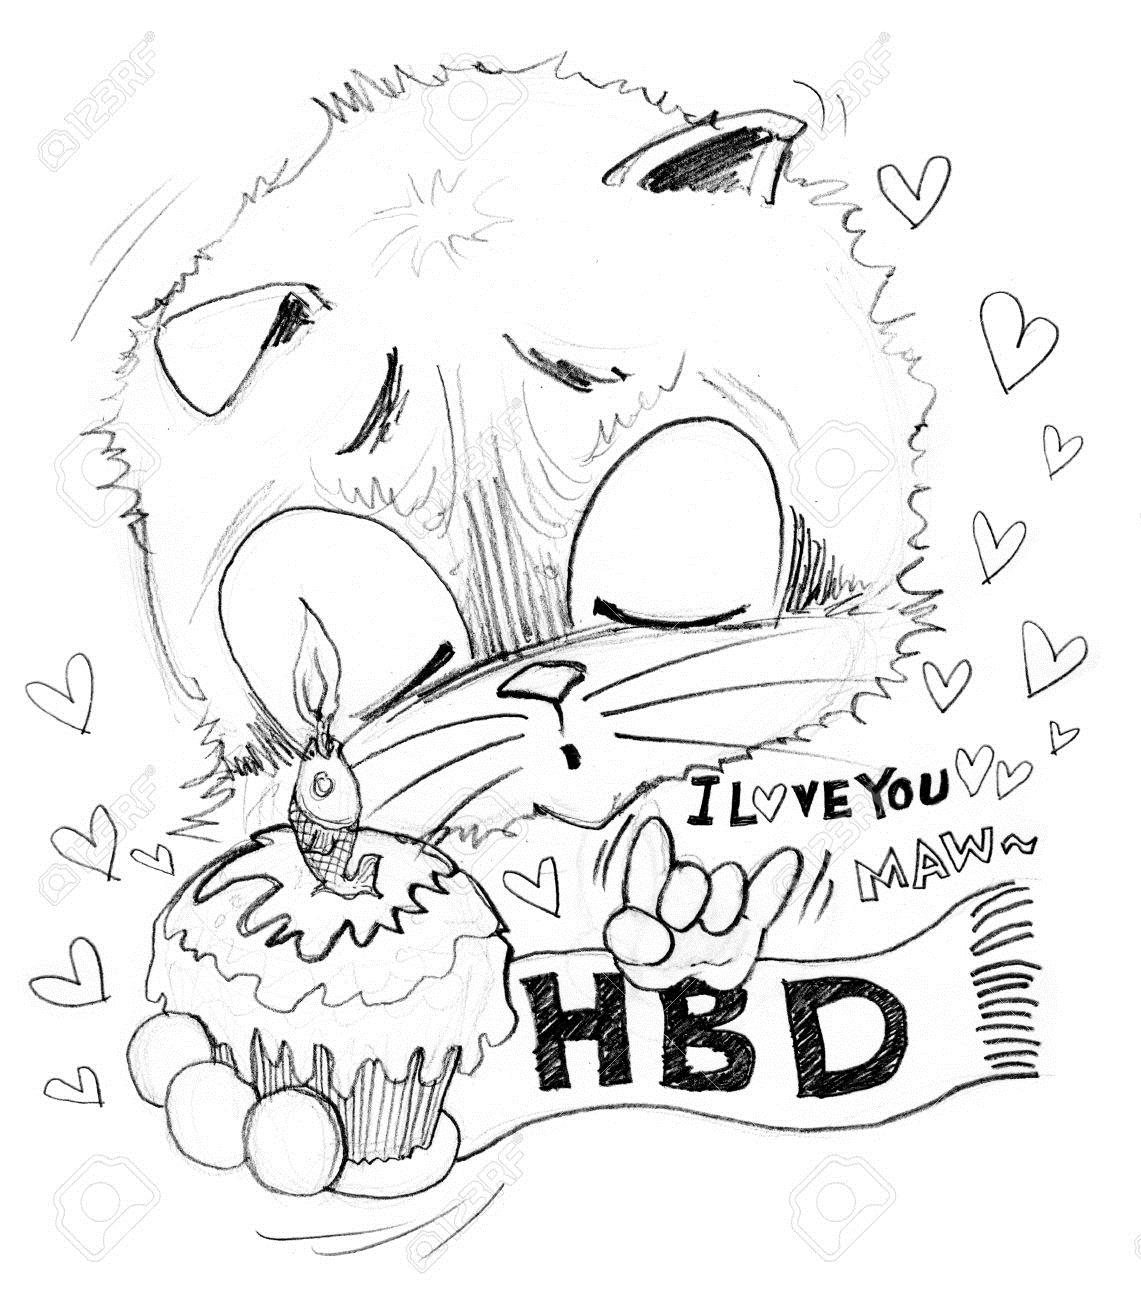 happy birthday cartoon drawing ; 73101182-happy-birthday-and-i-love-you-he-surprise-with-girl-friend-very-cute-acting-cat-cartoon-cute-charact